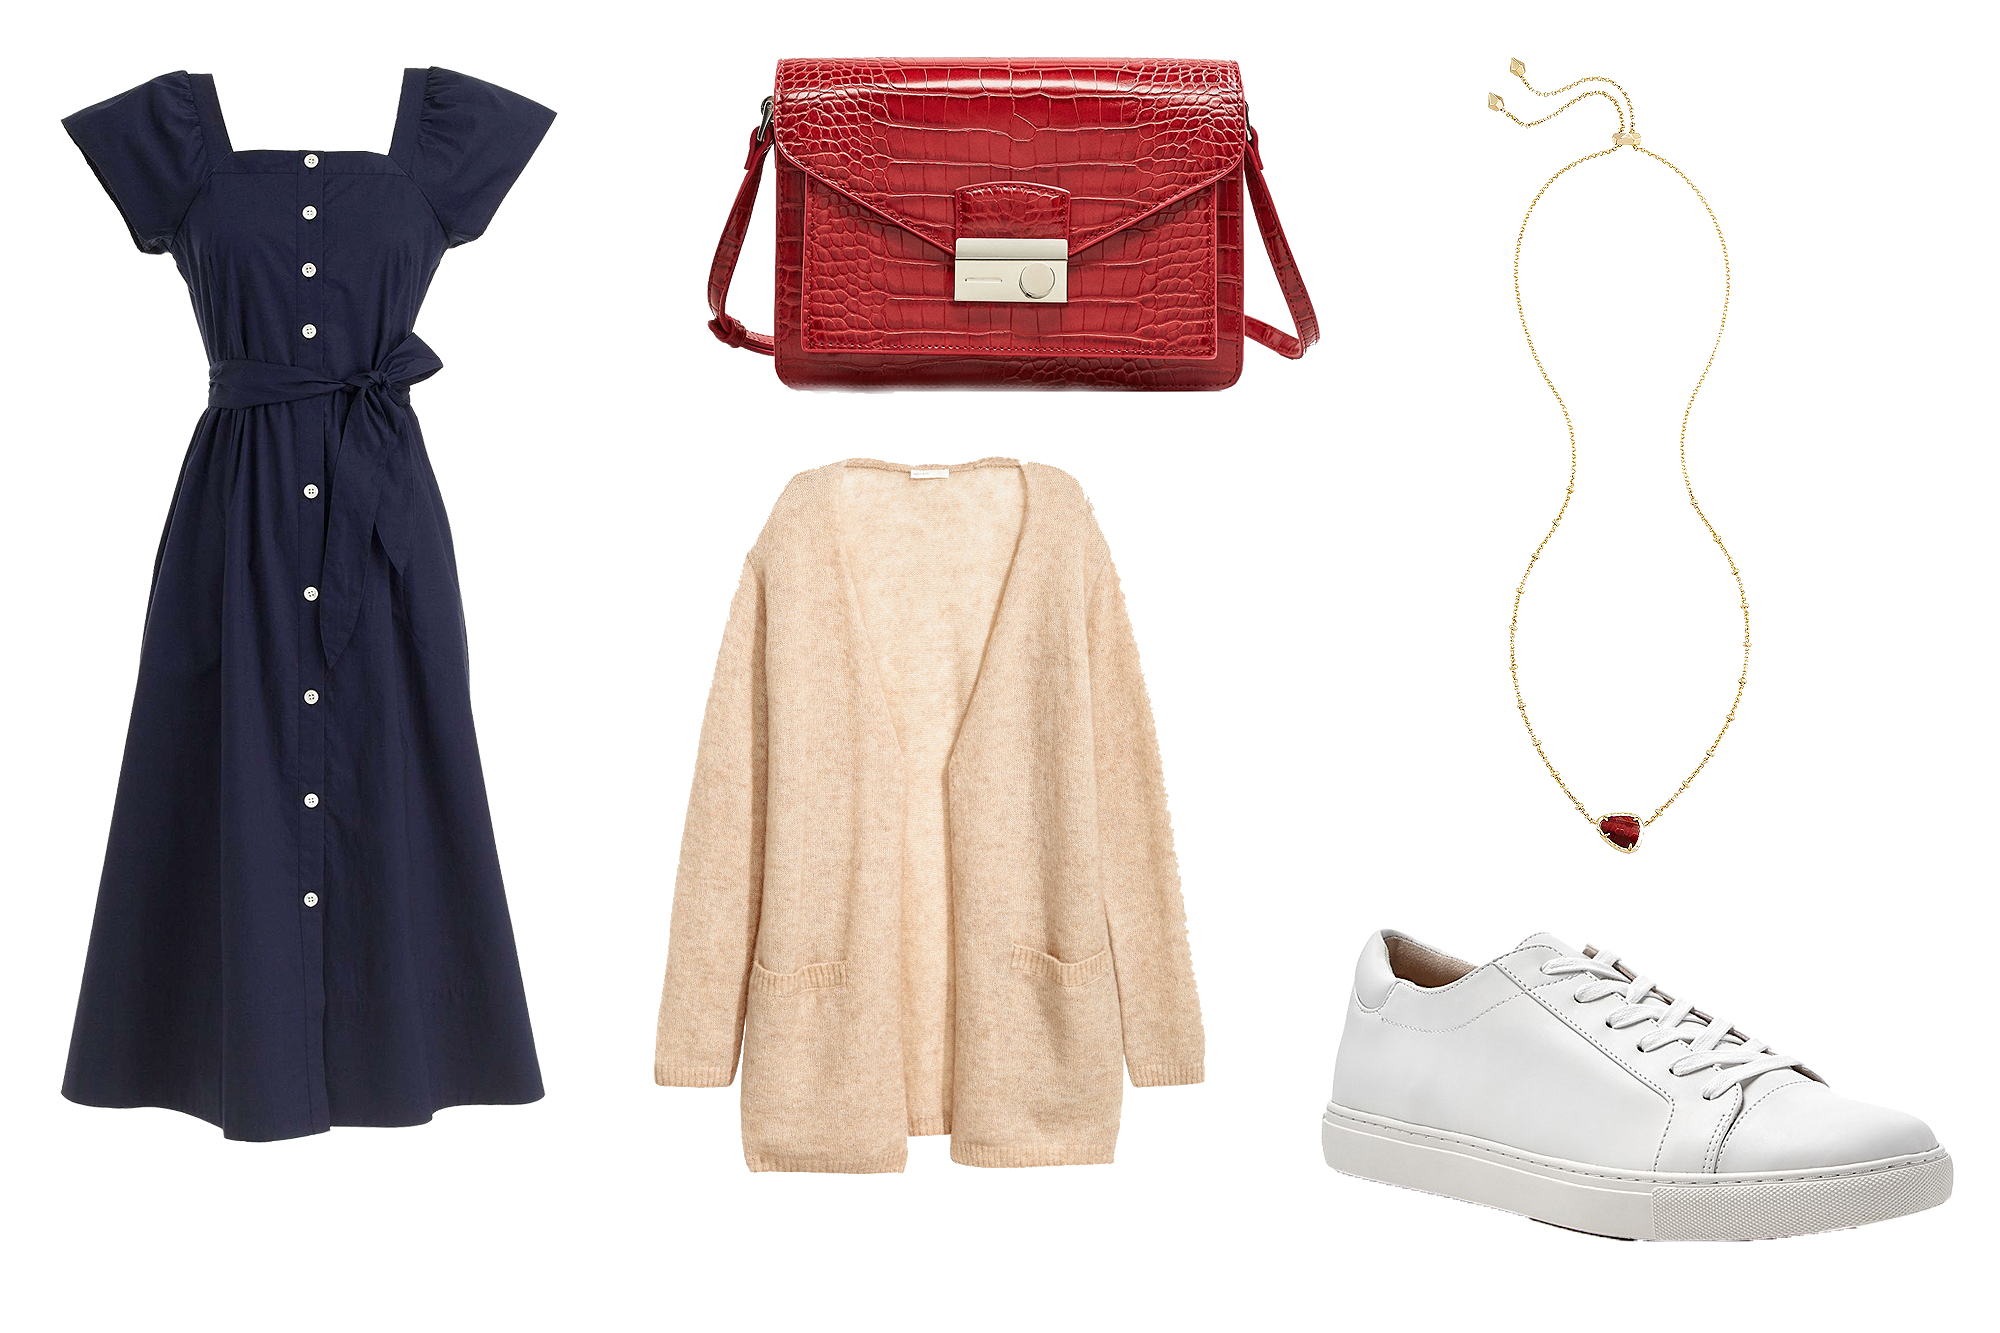 Shopping: 3 Fresh Ways to Wear White Sneakers for Fall